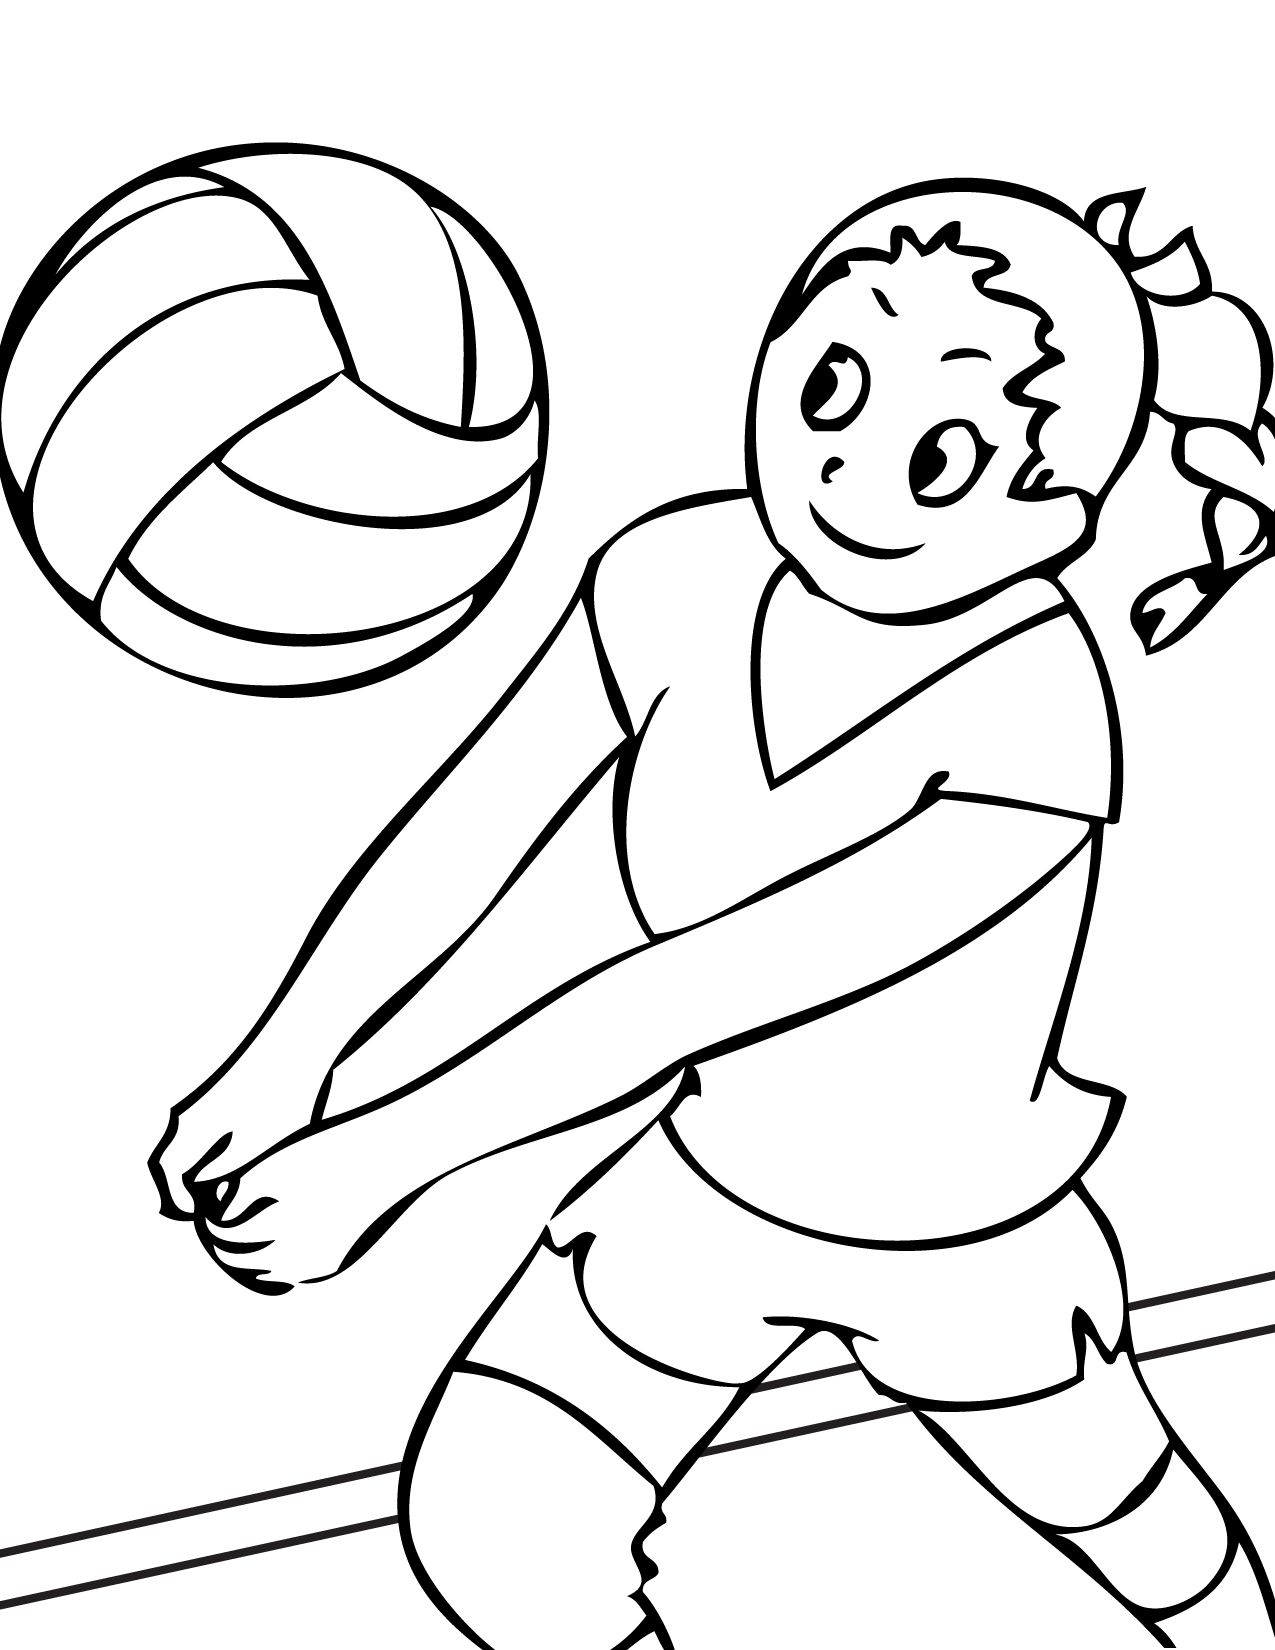 Free coloring pages for june - Coloring Pages For Kids Sports Kidsfreecoloring Net Free Download Kids Coloring Printable